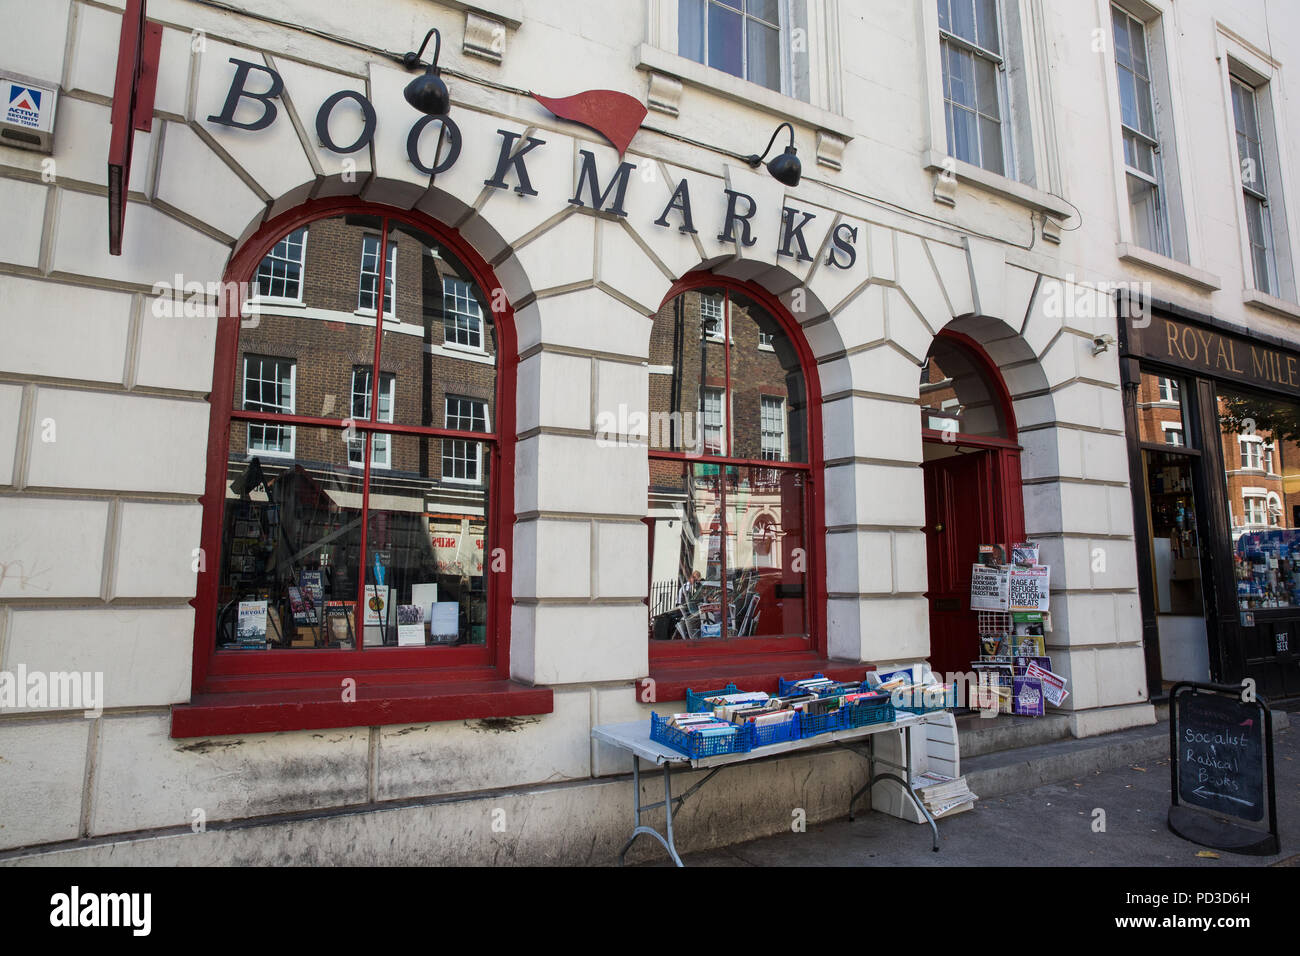 London, UK. 6th August, 2018. Bookmarks, the socialist bookshop in Bloomsbury where stock was damaged by around a dozen alt-right activists, one wearing a Donald Trump mask and others baseball caps bearing the message Make Britain Great Again, on Saturday evening. Displays were damaged and books and magazines ripped during the attack. Credit: Mark Kerrison/Alamy Live News - Stock Image